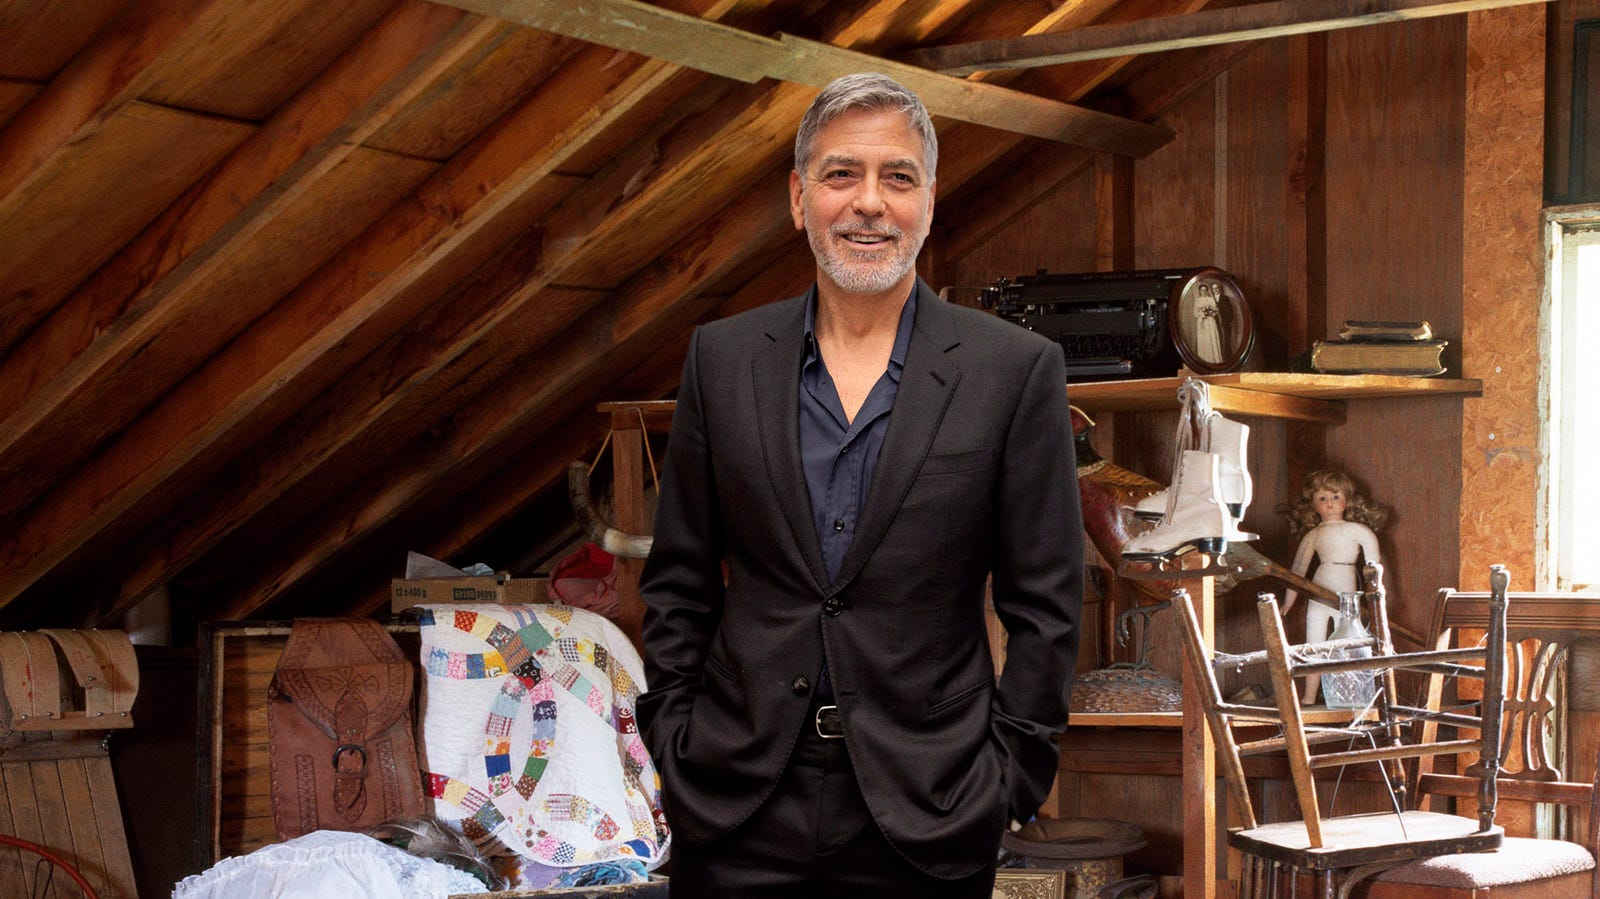 Real Estate Experts Confirm Having George Clooney Living In Attic Greatly Increases Property Value Wq8ikzjmxrt3euetjwbh